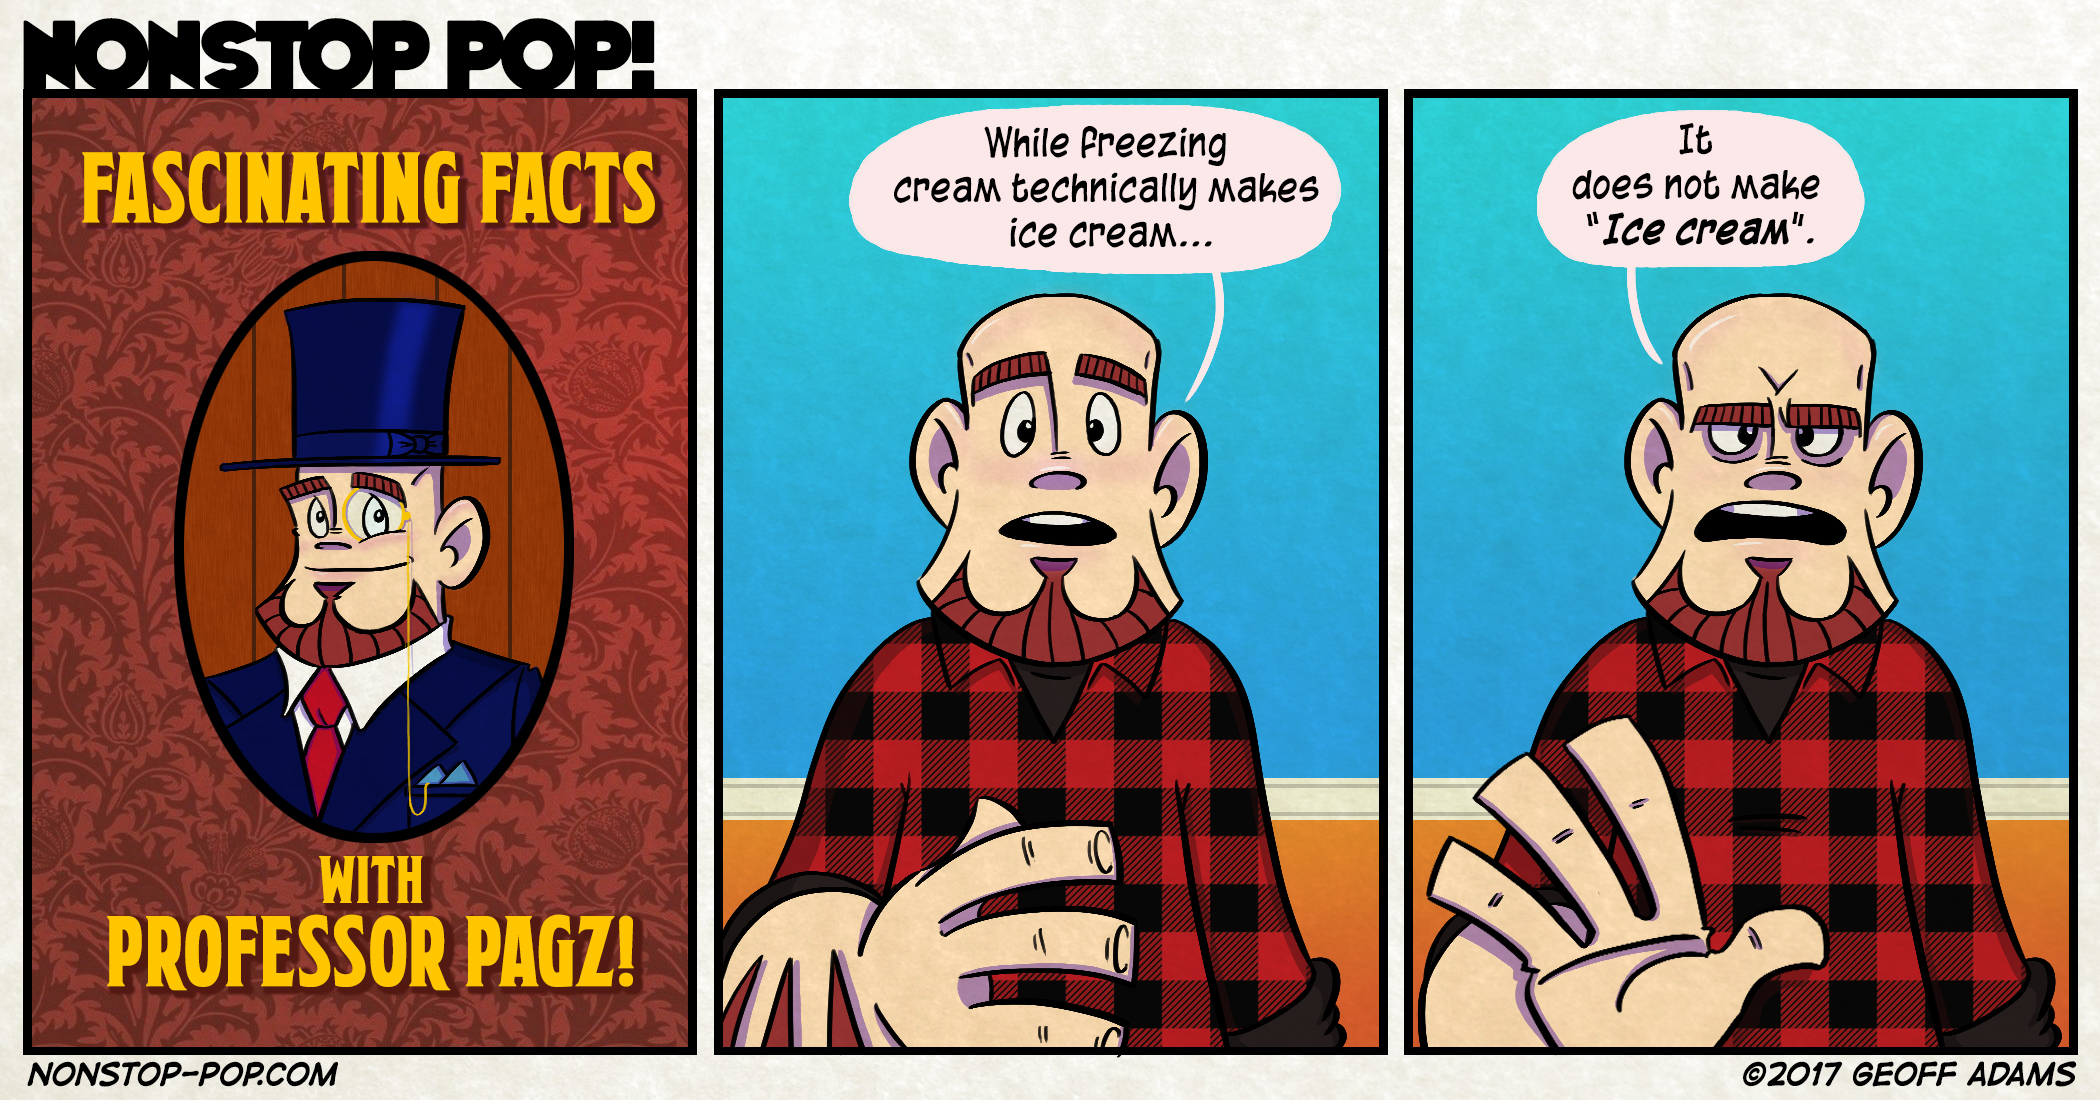 Fascinating Facts with Professor Pagz